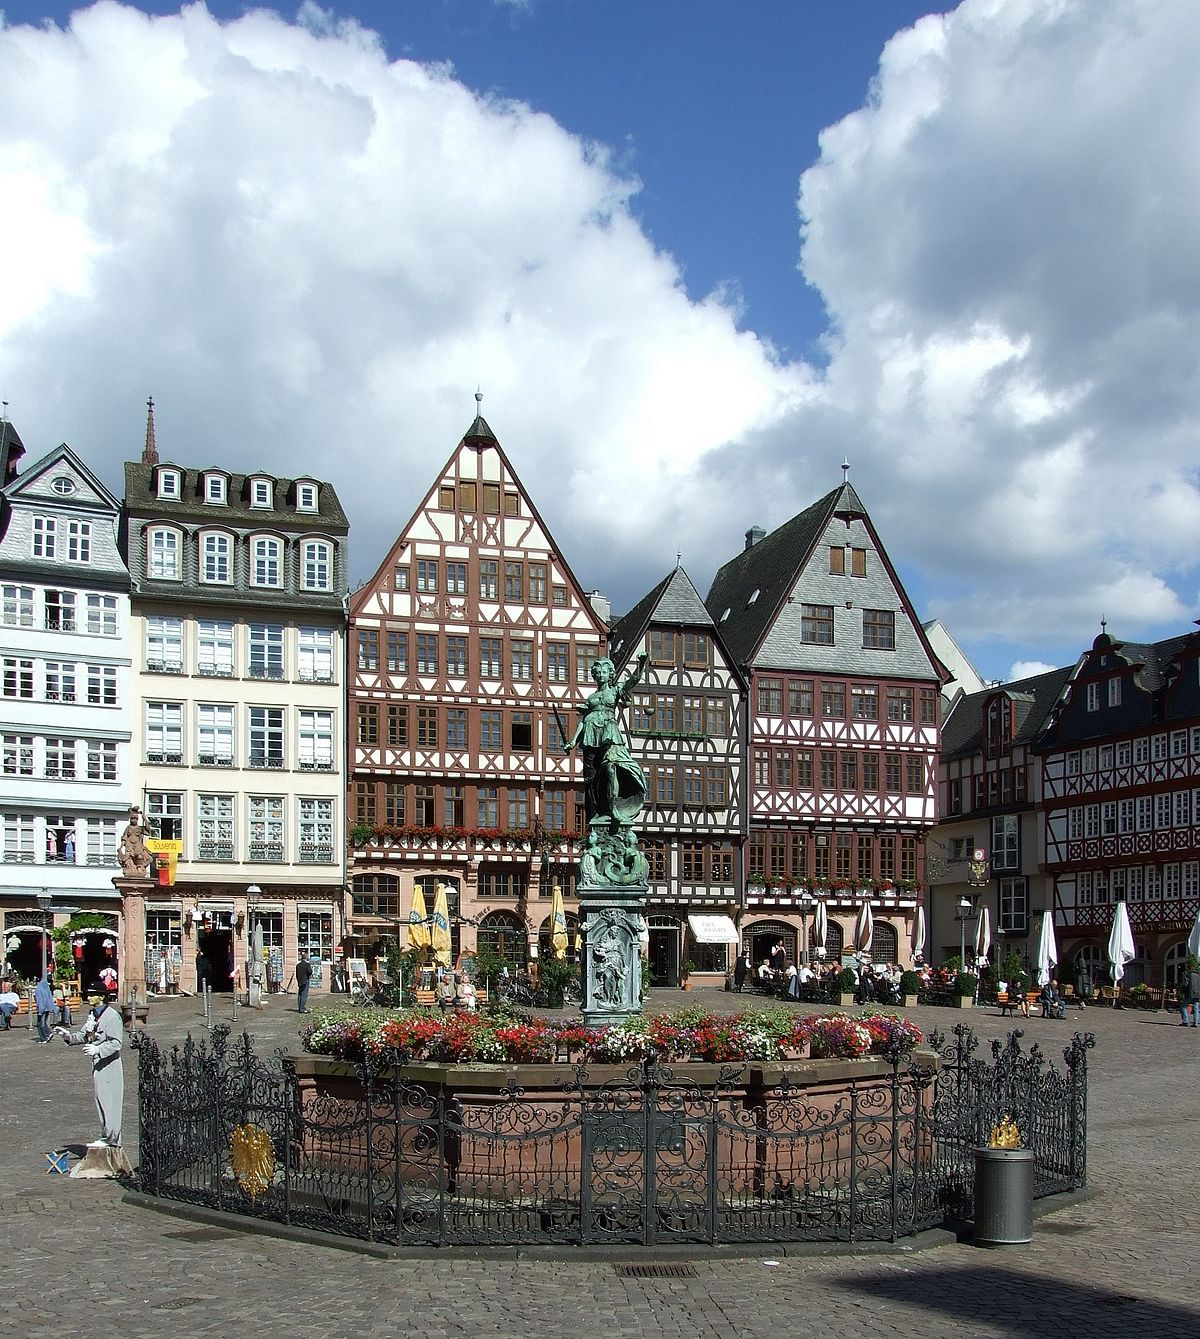 gerechtigkeitsbrunnen frankfurt am main wikipedia. Black Bedroom Furniture Sets. Home Design Ideas